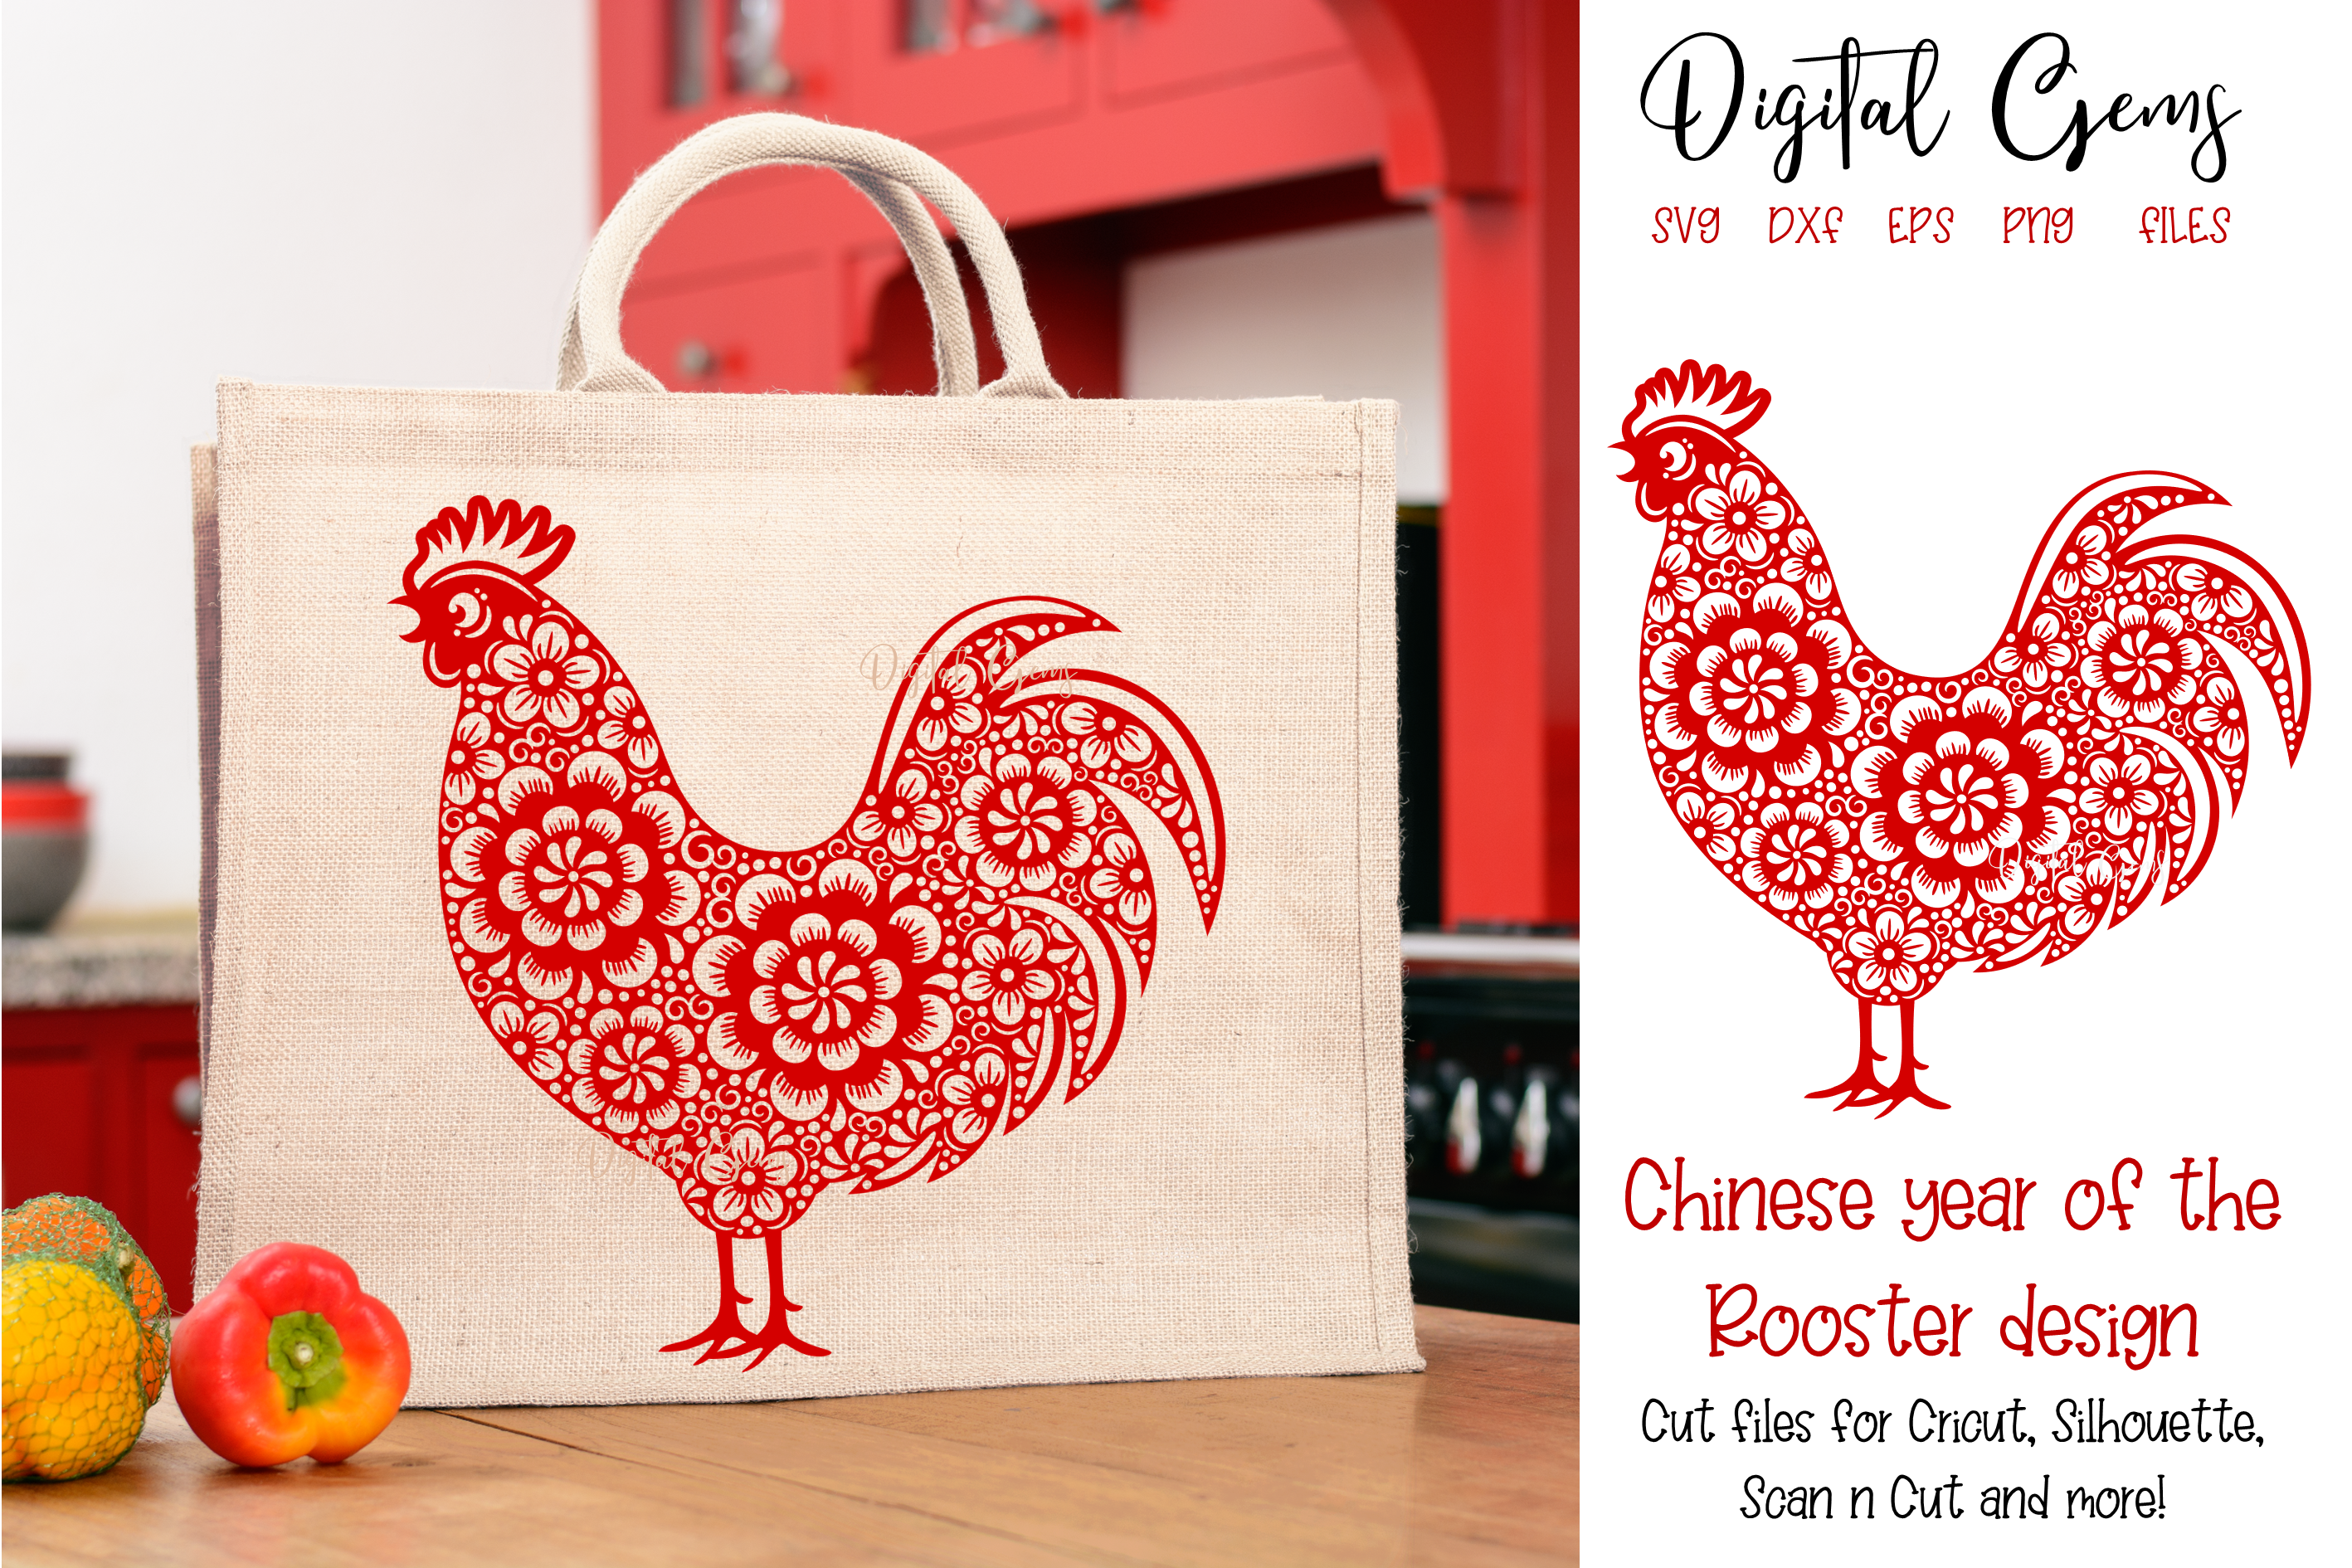 Download Free Rooster Chinese New Year Design Graphic By Digital Gems for Cricut Explore, Silhouette and other cutting machines.